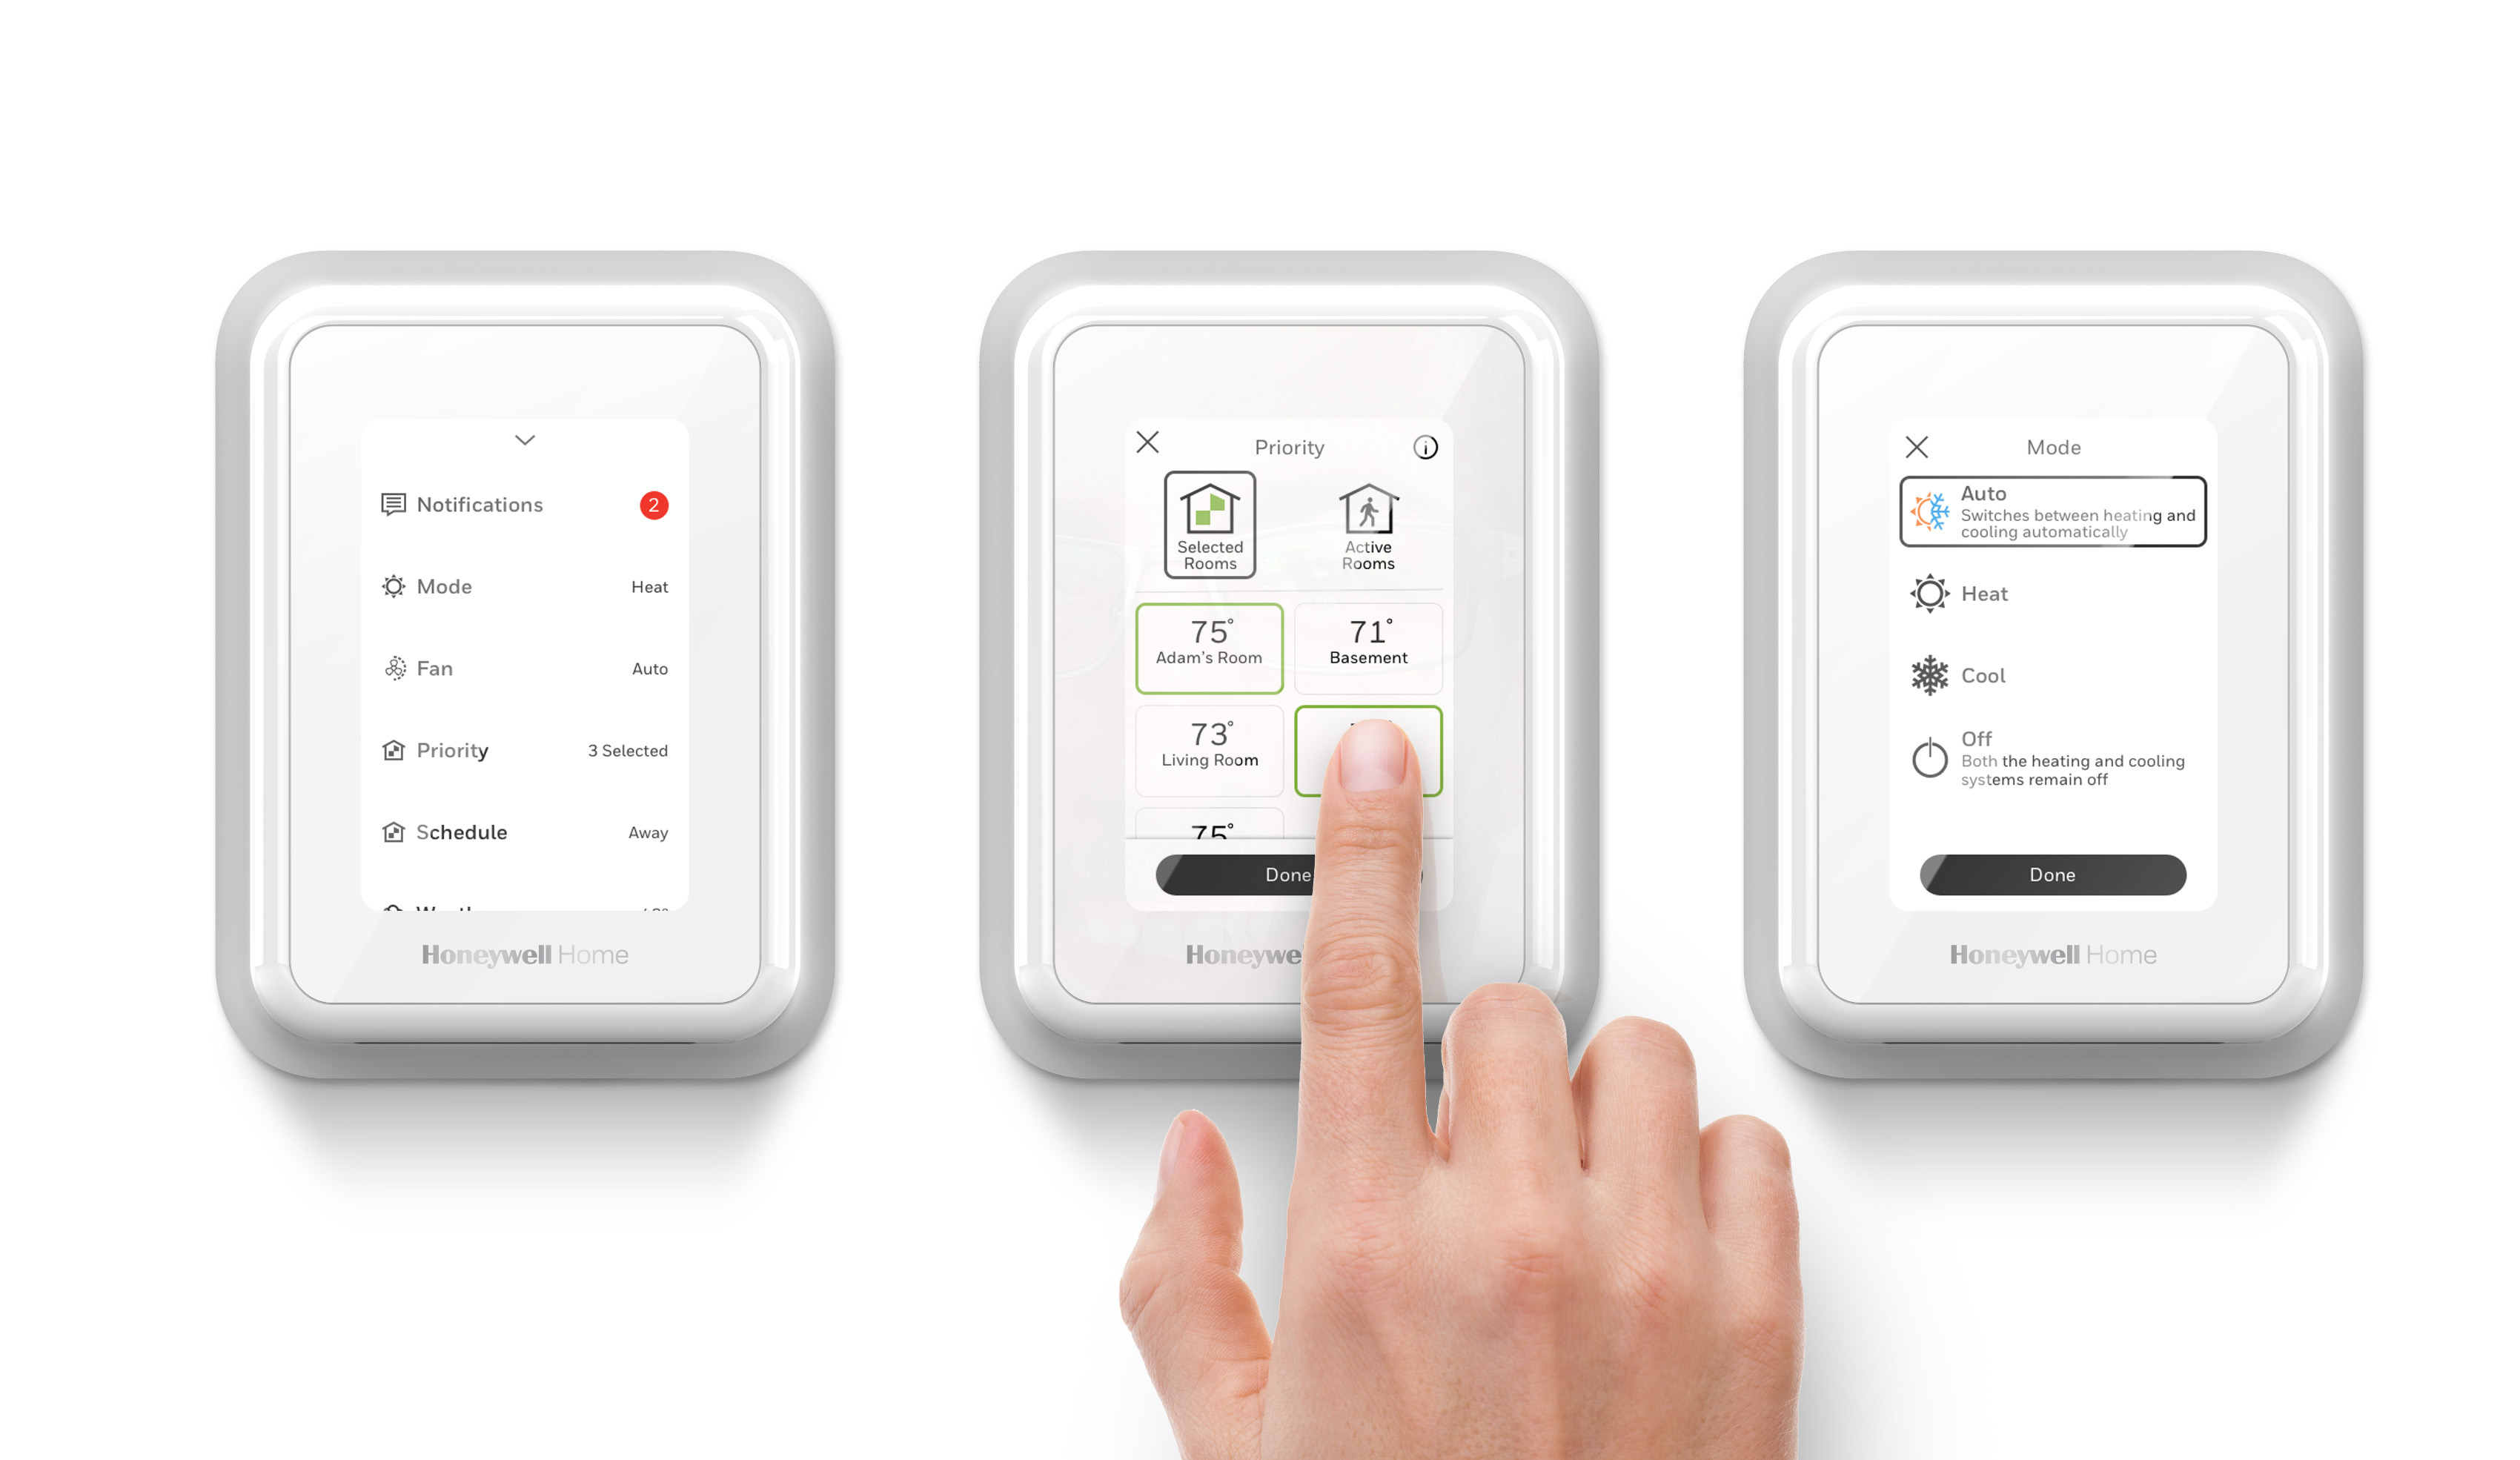 Photo of finger interacting with SiXCOMBO Honeywell Home